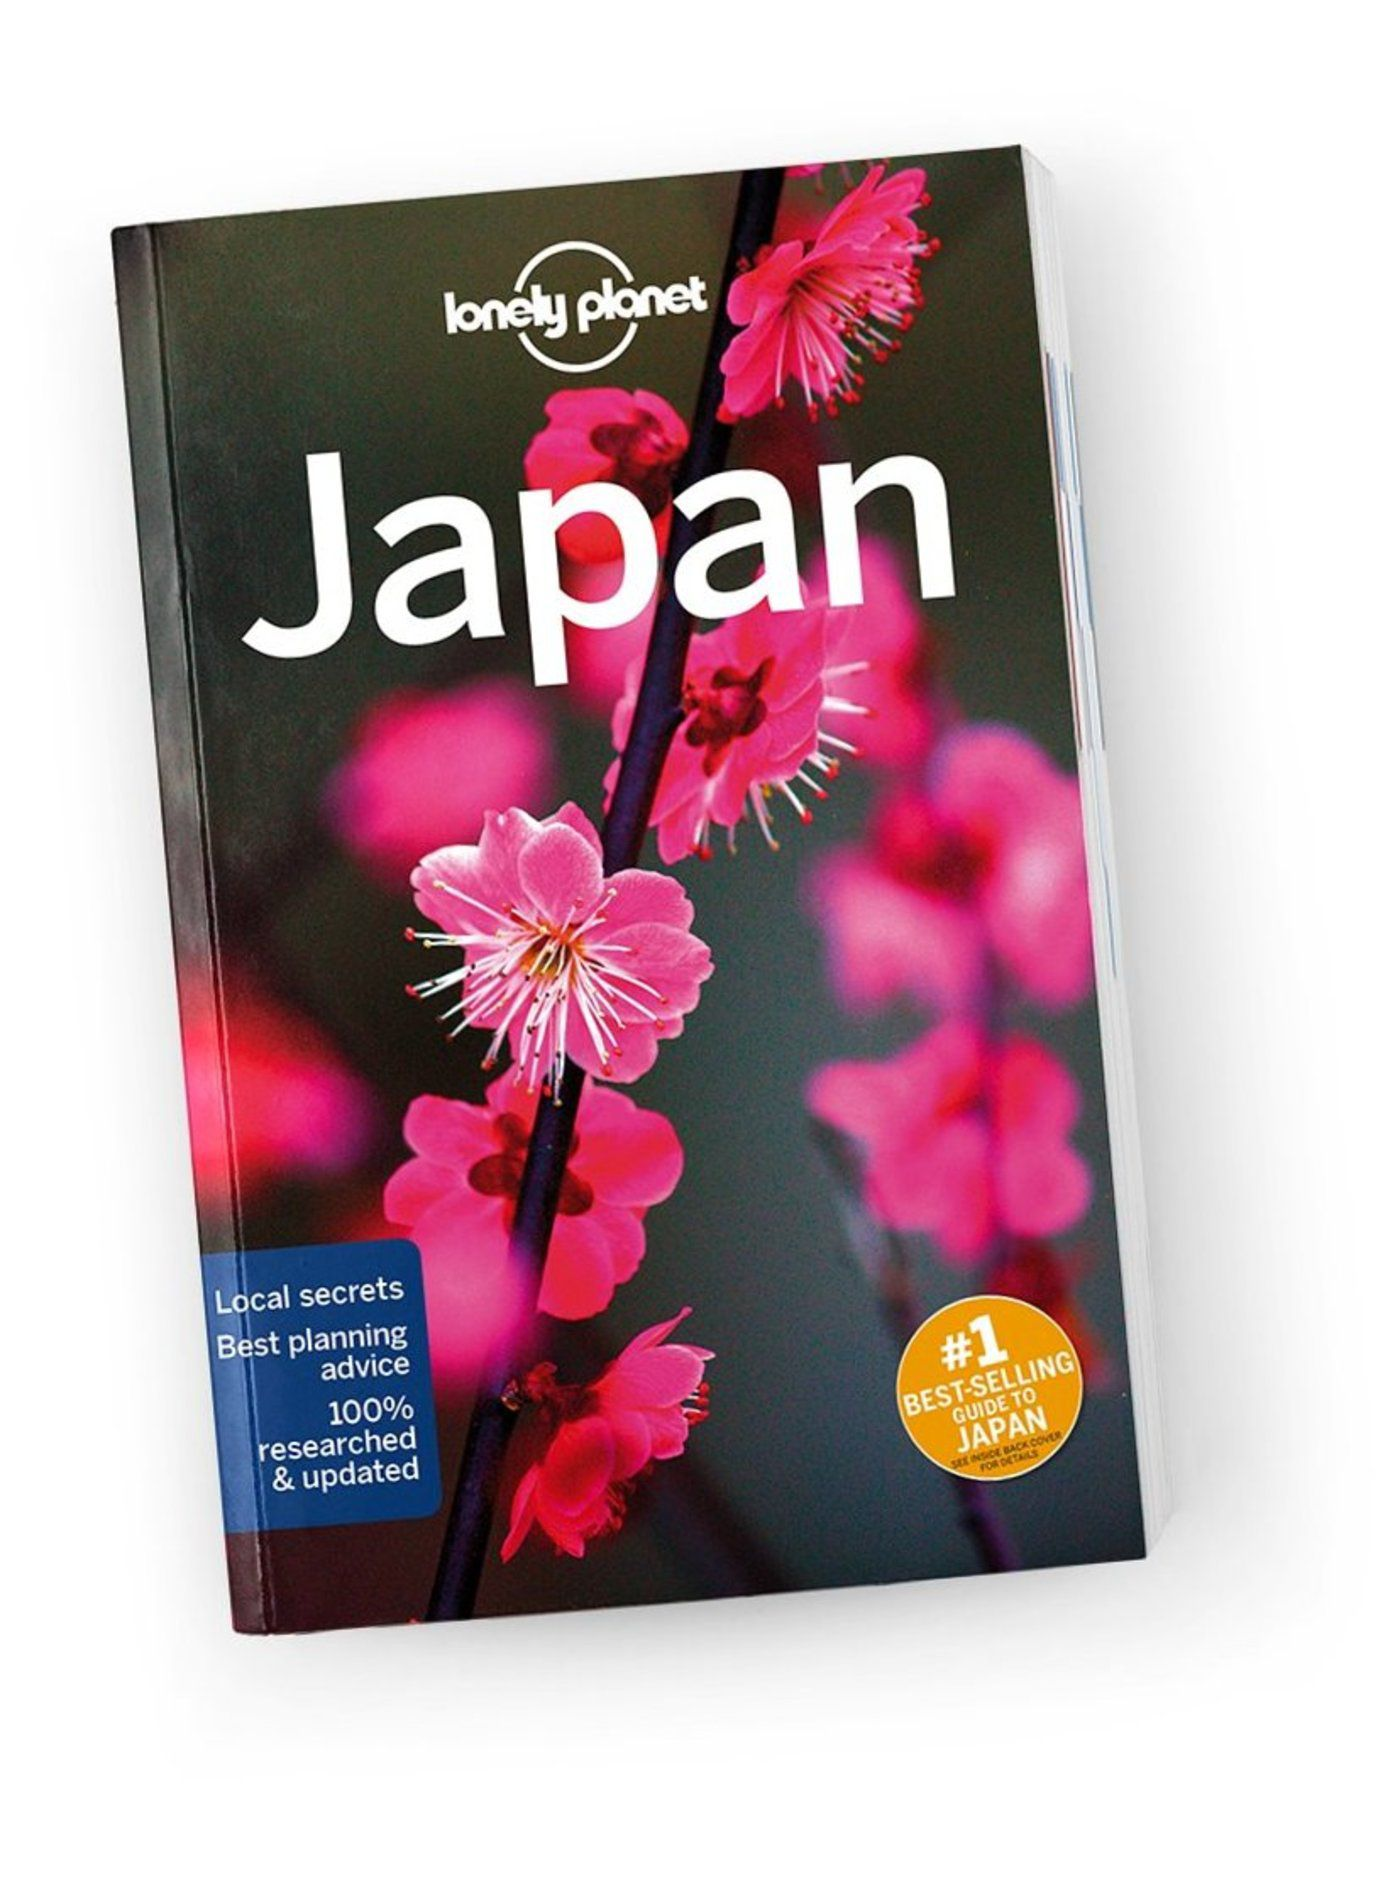 Lonely planet country guide(series) · overdrive (rakuten overdrive.